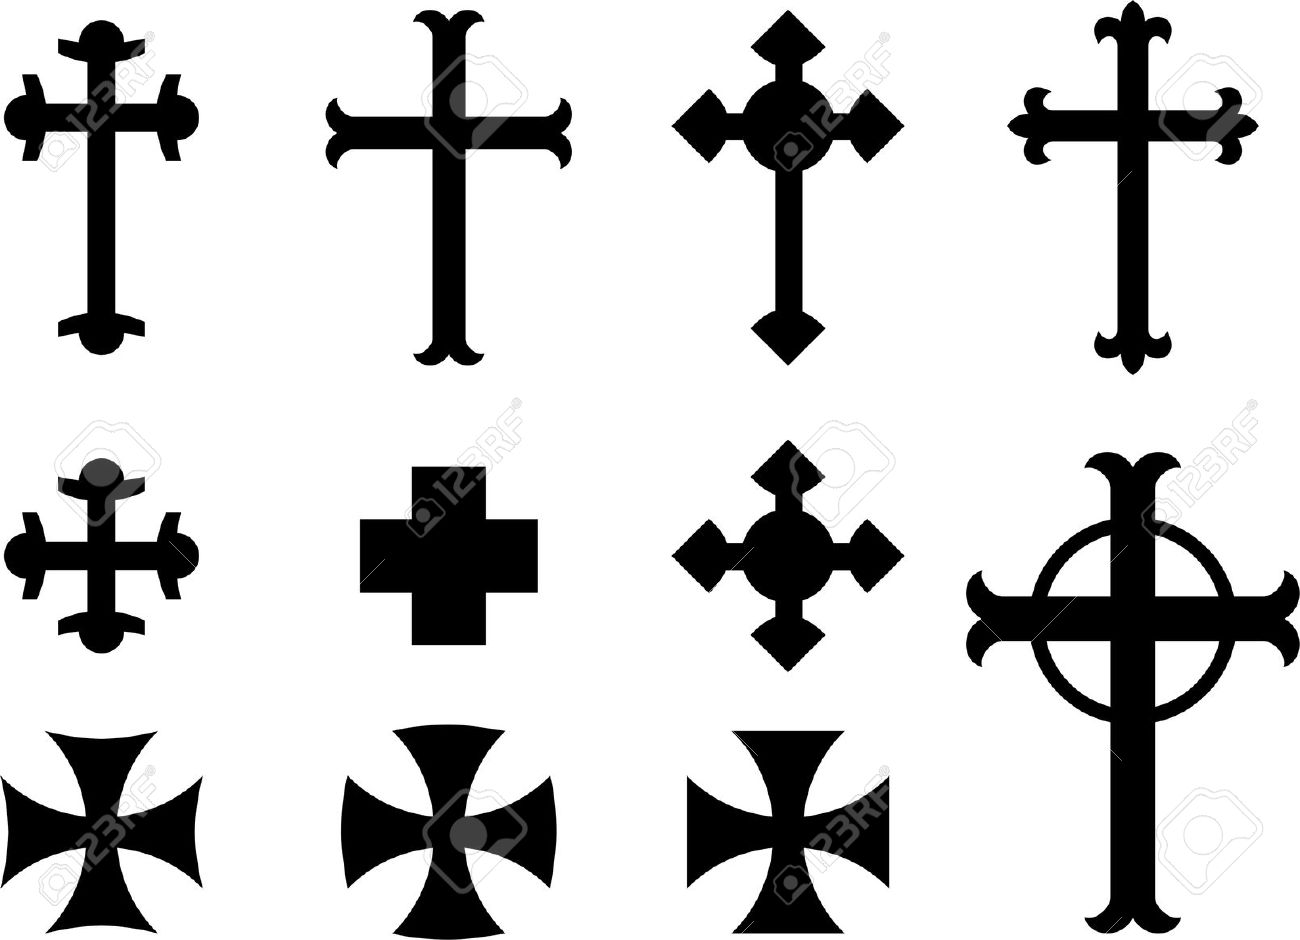 Templar cross tattoo clipart free download best templar cross 1300x940 christian cross designs clip art buycottarizona